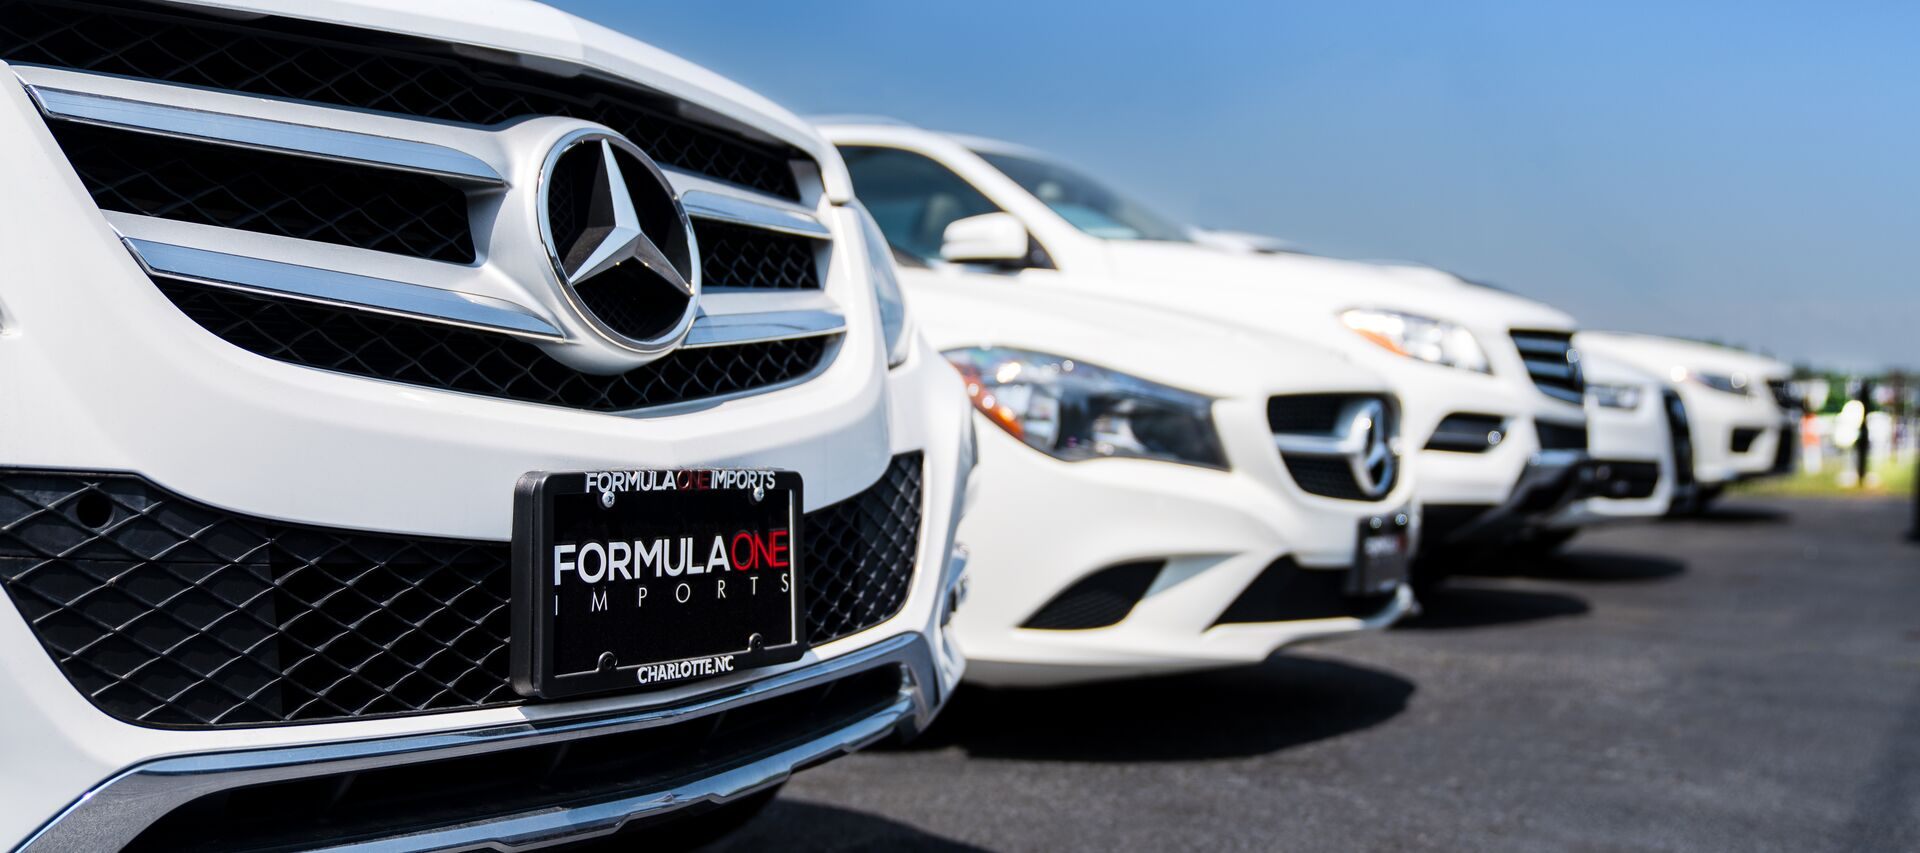 Charlotte Used Luxury Cars for Sale: Foreign Vehicles